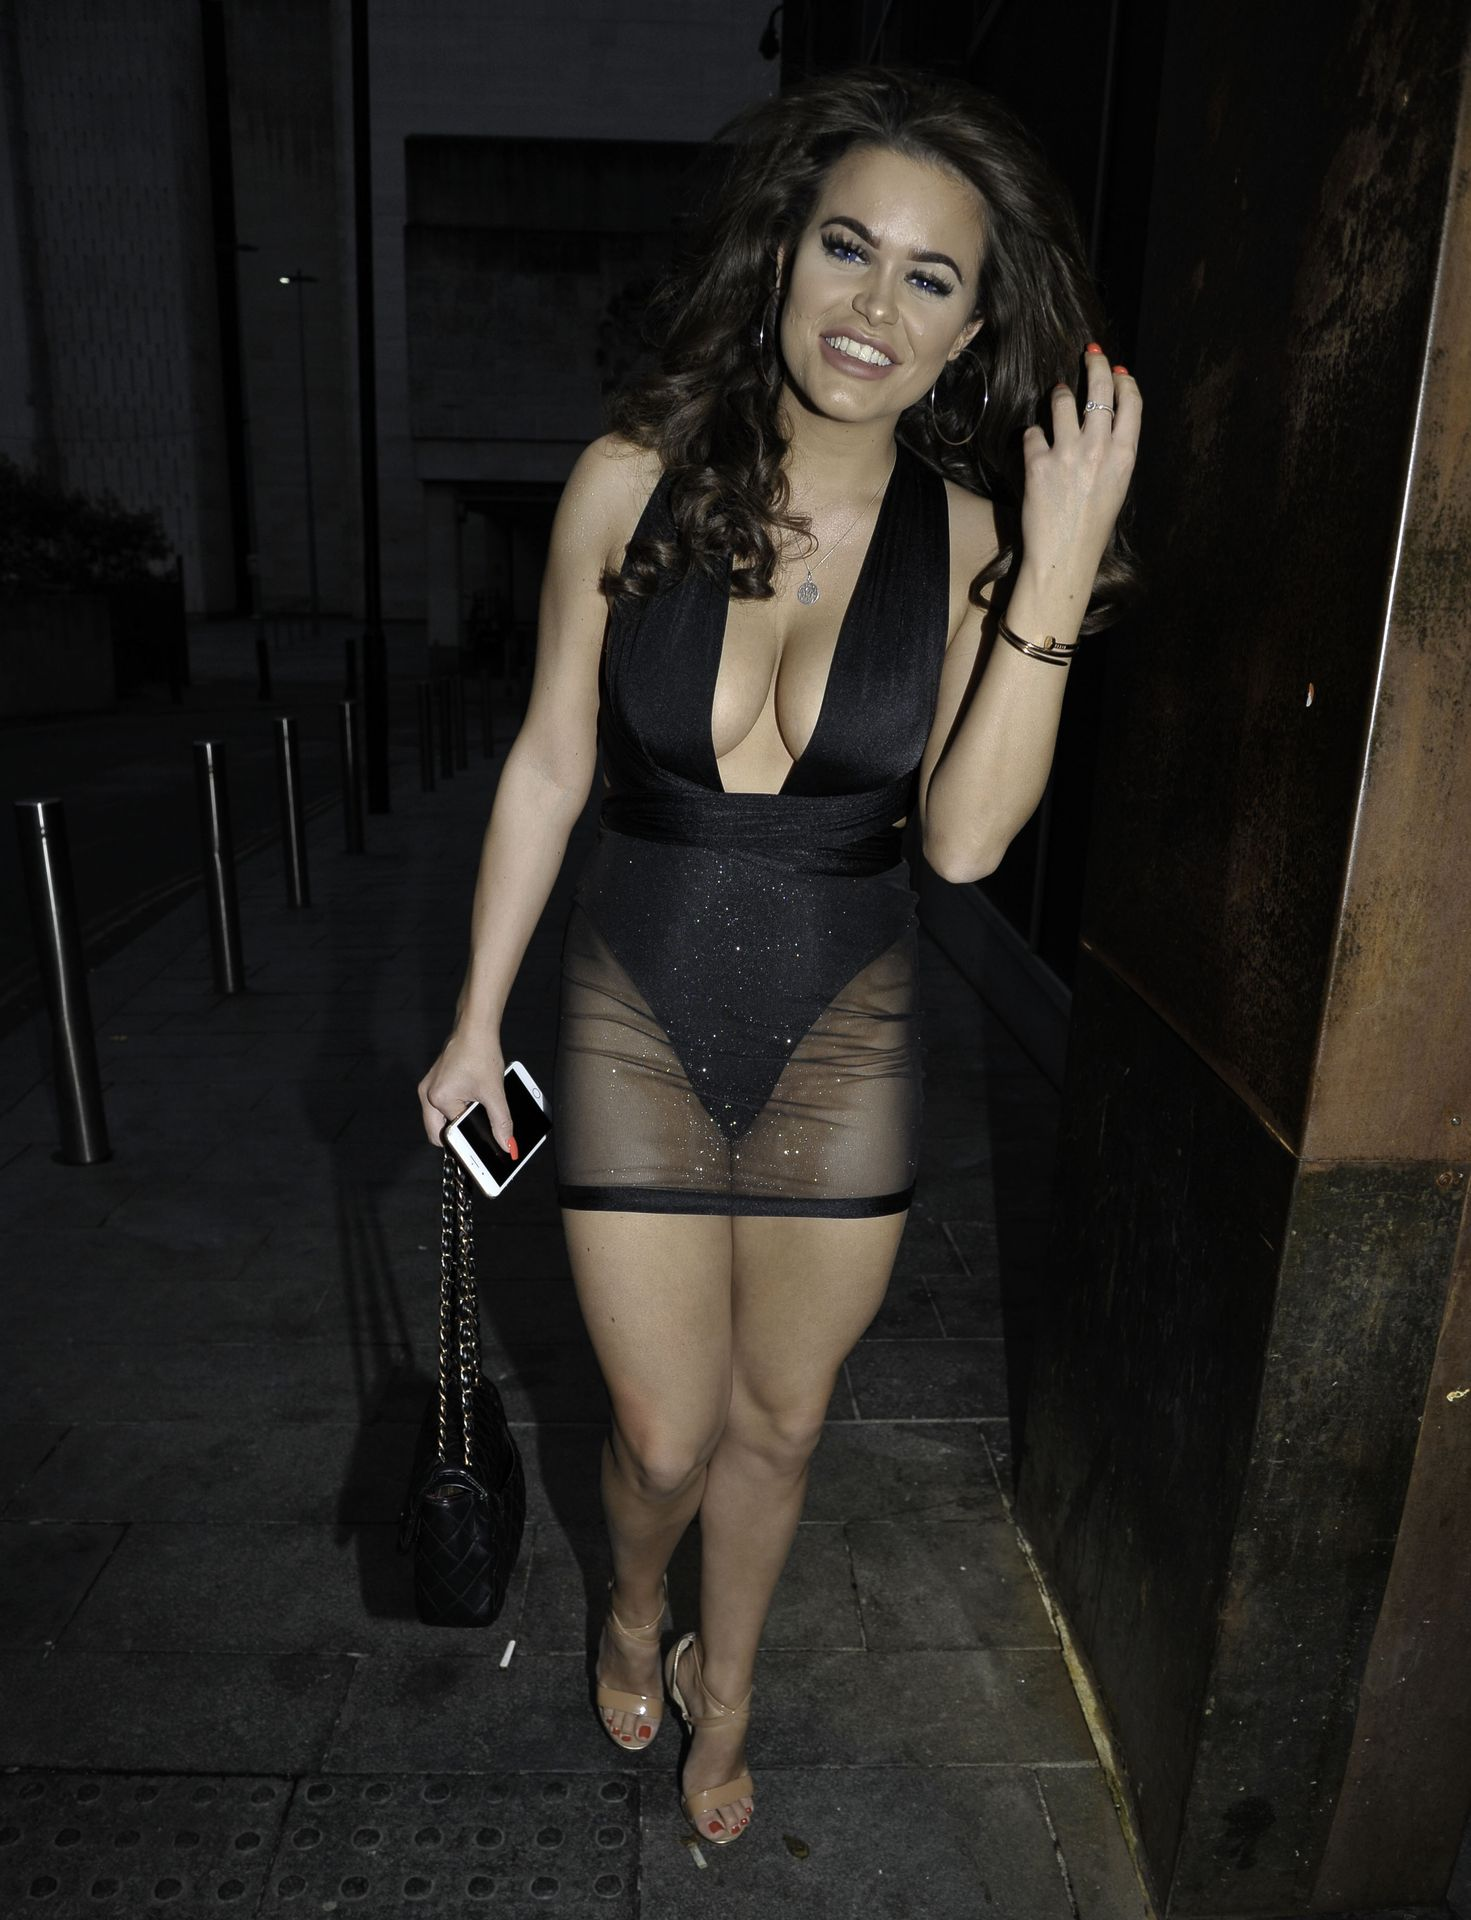 Rhianne Saxby & Sarah Longbottom Look Hot In Manchester 0026